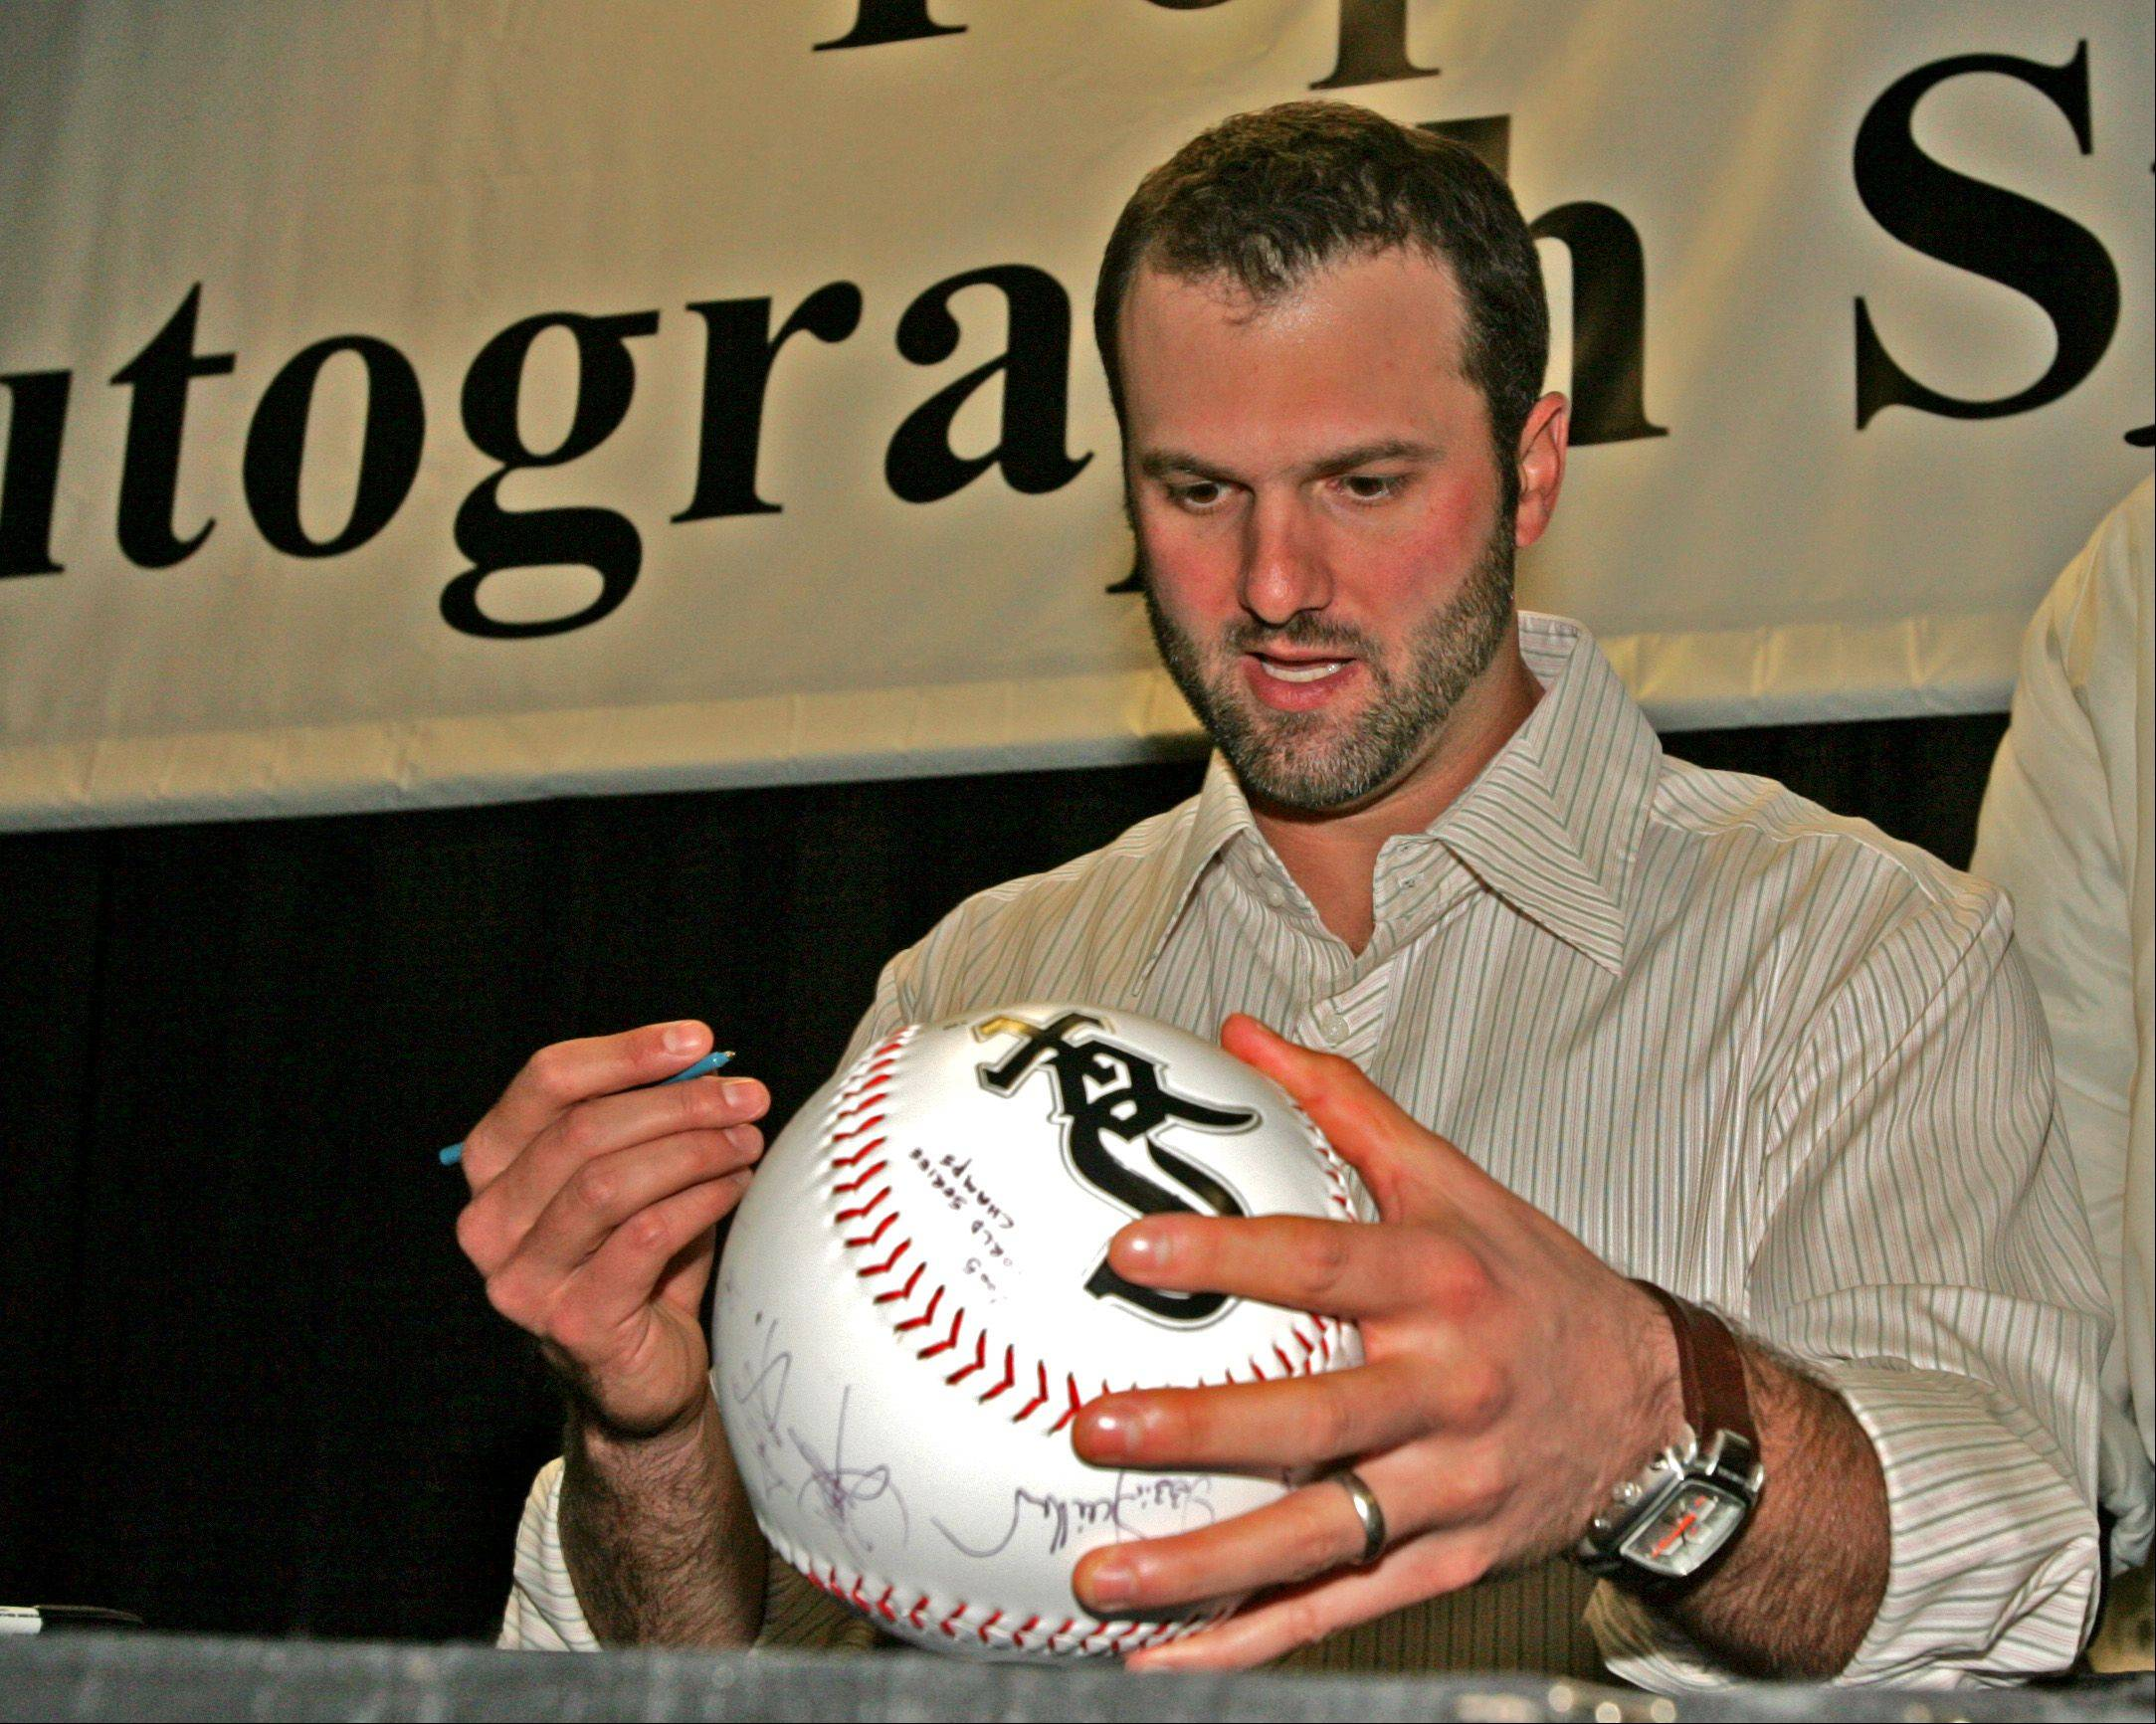 wsox_6sp012706dw Photo0476944 DANIEL WHITE PHOTO//////// Paul Konerko appears once again at SoxFest this year.